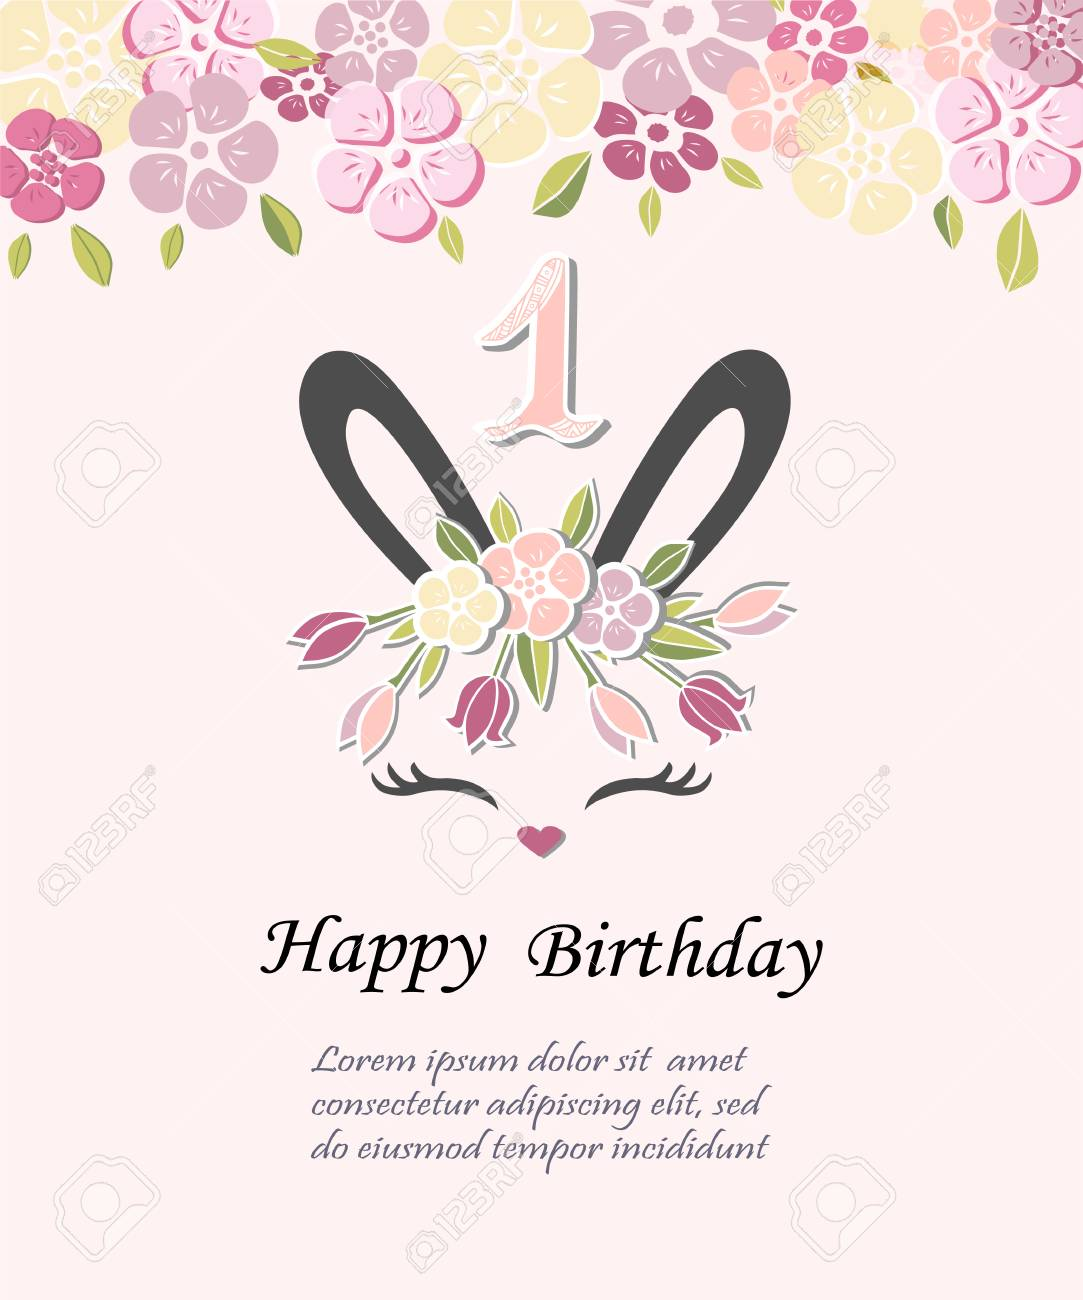 Vector Illustration With Bunny Ears Template For Baby Birthday